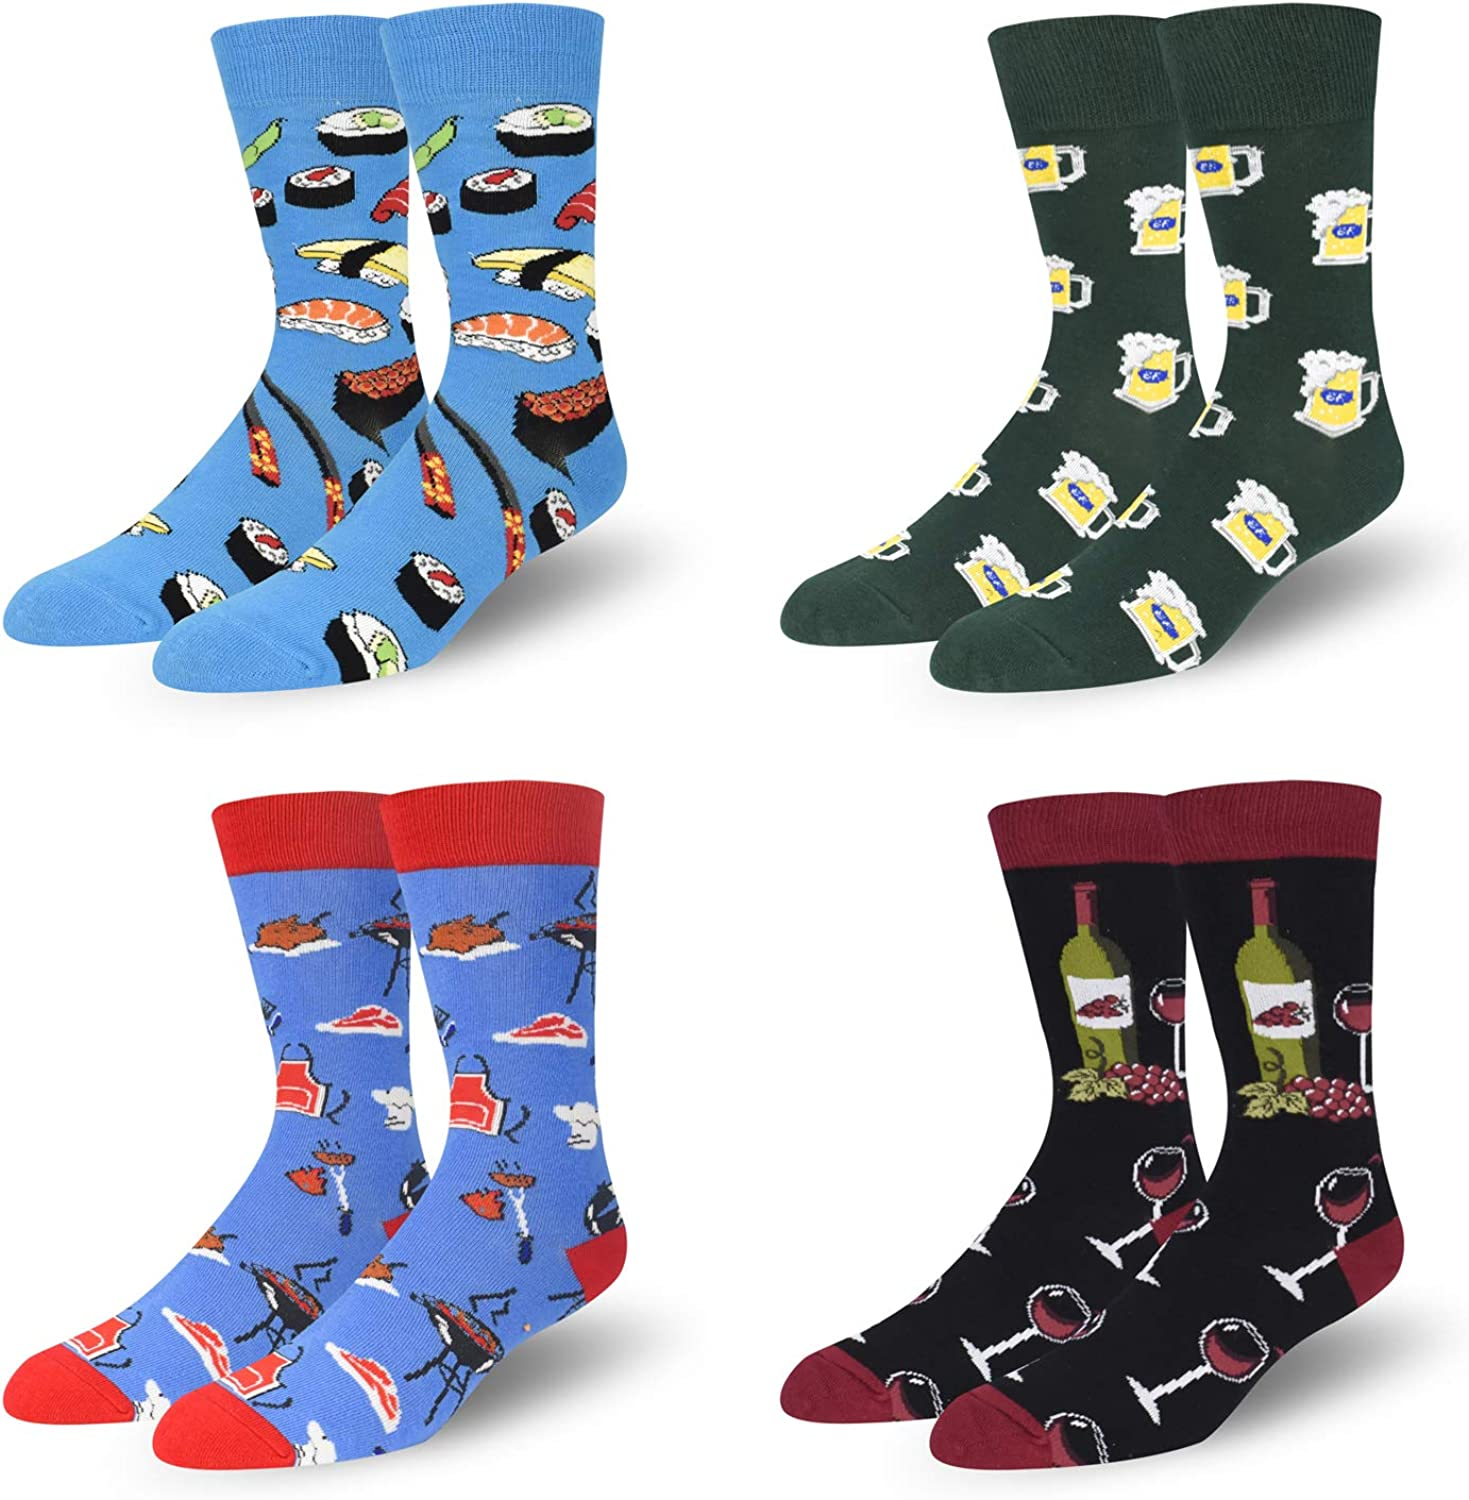 Seorsok Novelty Socks Colorful Funny Mens Crew Socks Outer Space Casual Cotton Socks